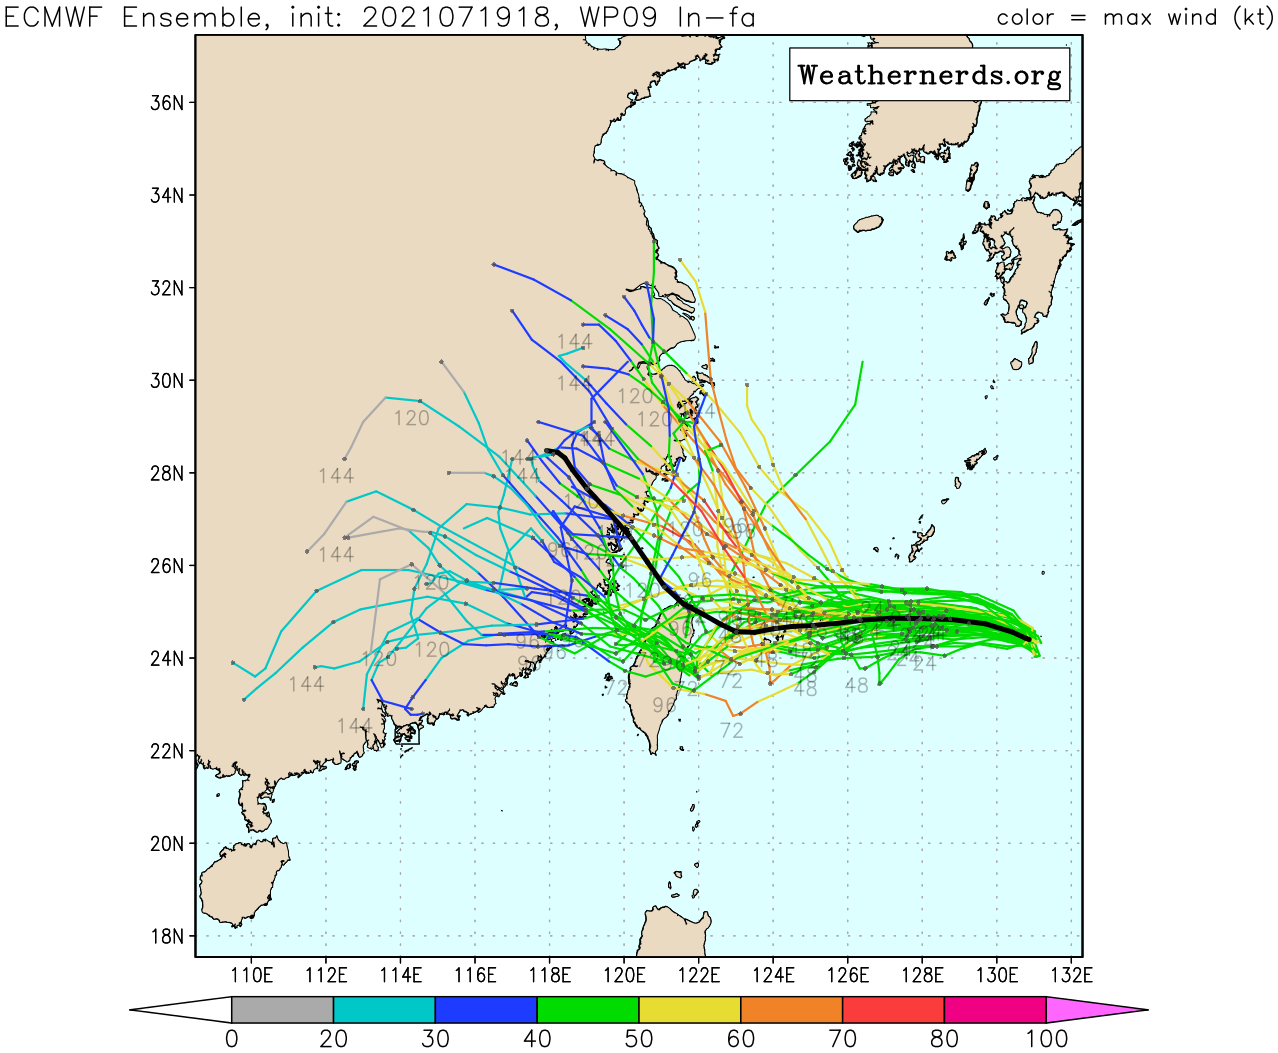 TS 09W(IN-FA). MODEL DISCUSSION: NUMERICAL MODELS ARE IN TIGHT AGREEMENT UP TO  48H THEN GRADUALLY SPREAD TO JUST 165KM AT 72H, LENDING HIGH CONFIDENCE TO THE NEAR TO MID-TERM PORTION OF THE JTWC TRACK FORECAST. AFTERWARD, FORECAST TRACK CONFIDENCE IS LOW AS THE MODELS SIGNIFICANTLY DIVERGE WITH NVGM ON THE EXTREME RIGHT OF THE ENVELOPE SUGGESTING A SHARP RECURVATURE NORTHEASTWARD, AND UKMET ON THE LEFT MARGIN OF THE ENVELOPE WITH A FLAT WESTWARD SOLUTION RESULTING IN A 1350+ KM SPREAD.